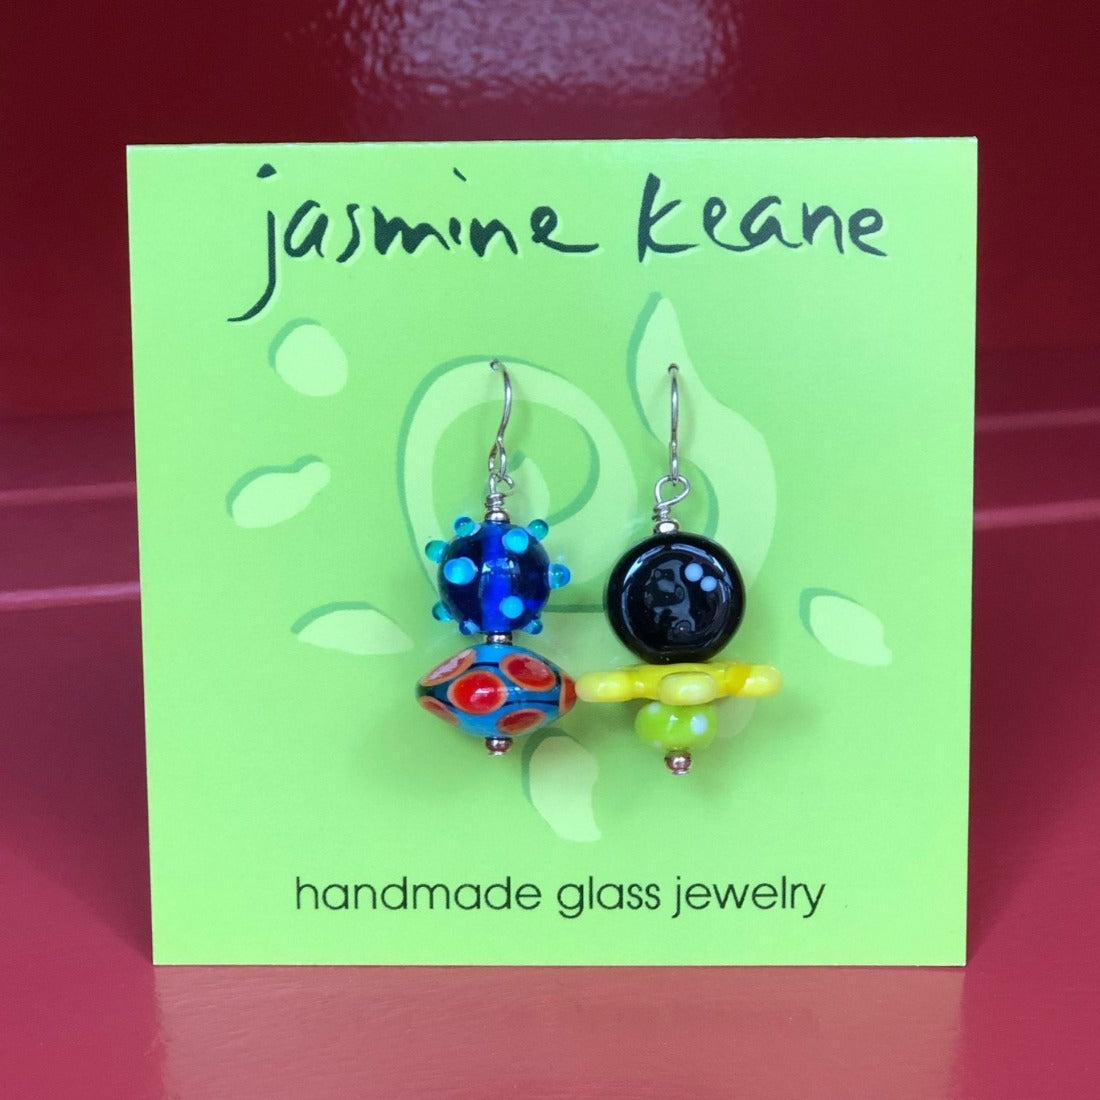 Big Girl II Earrings by Jasmine Keane